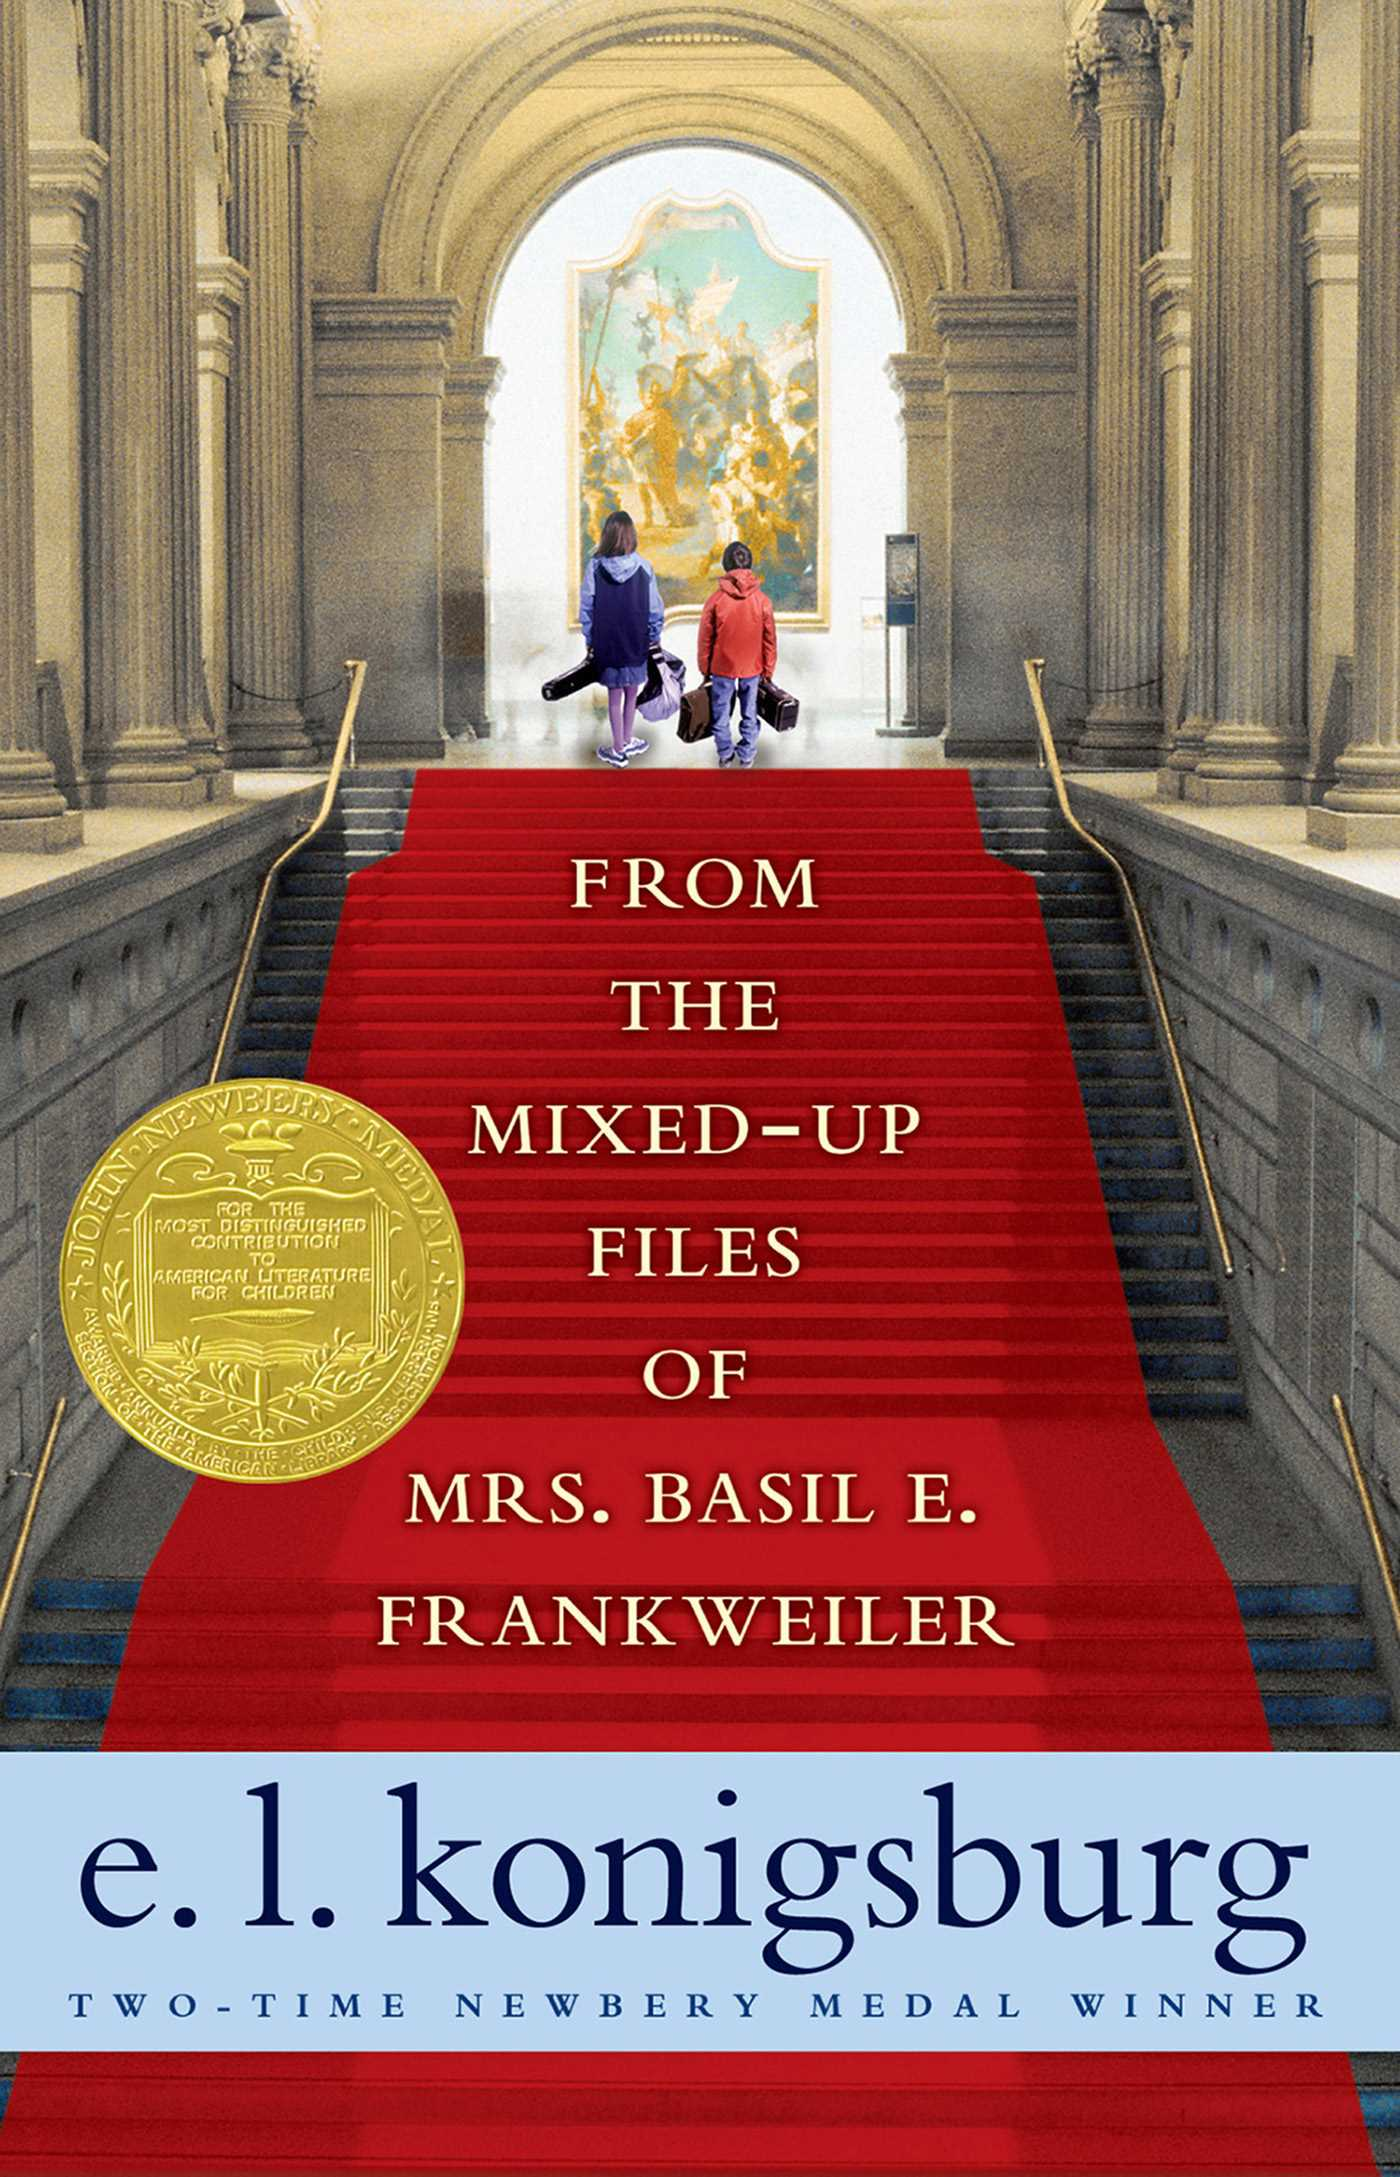 From-the-mixed-up-files-of-mrs-basil-e-frankweiler-9781442431263_hr